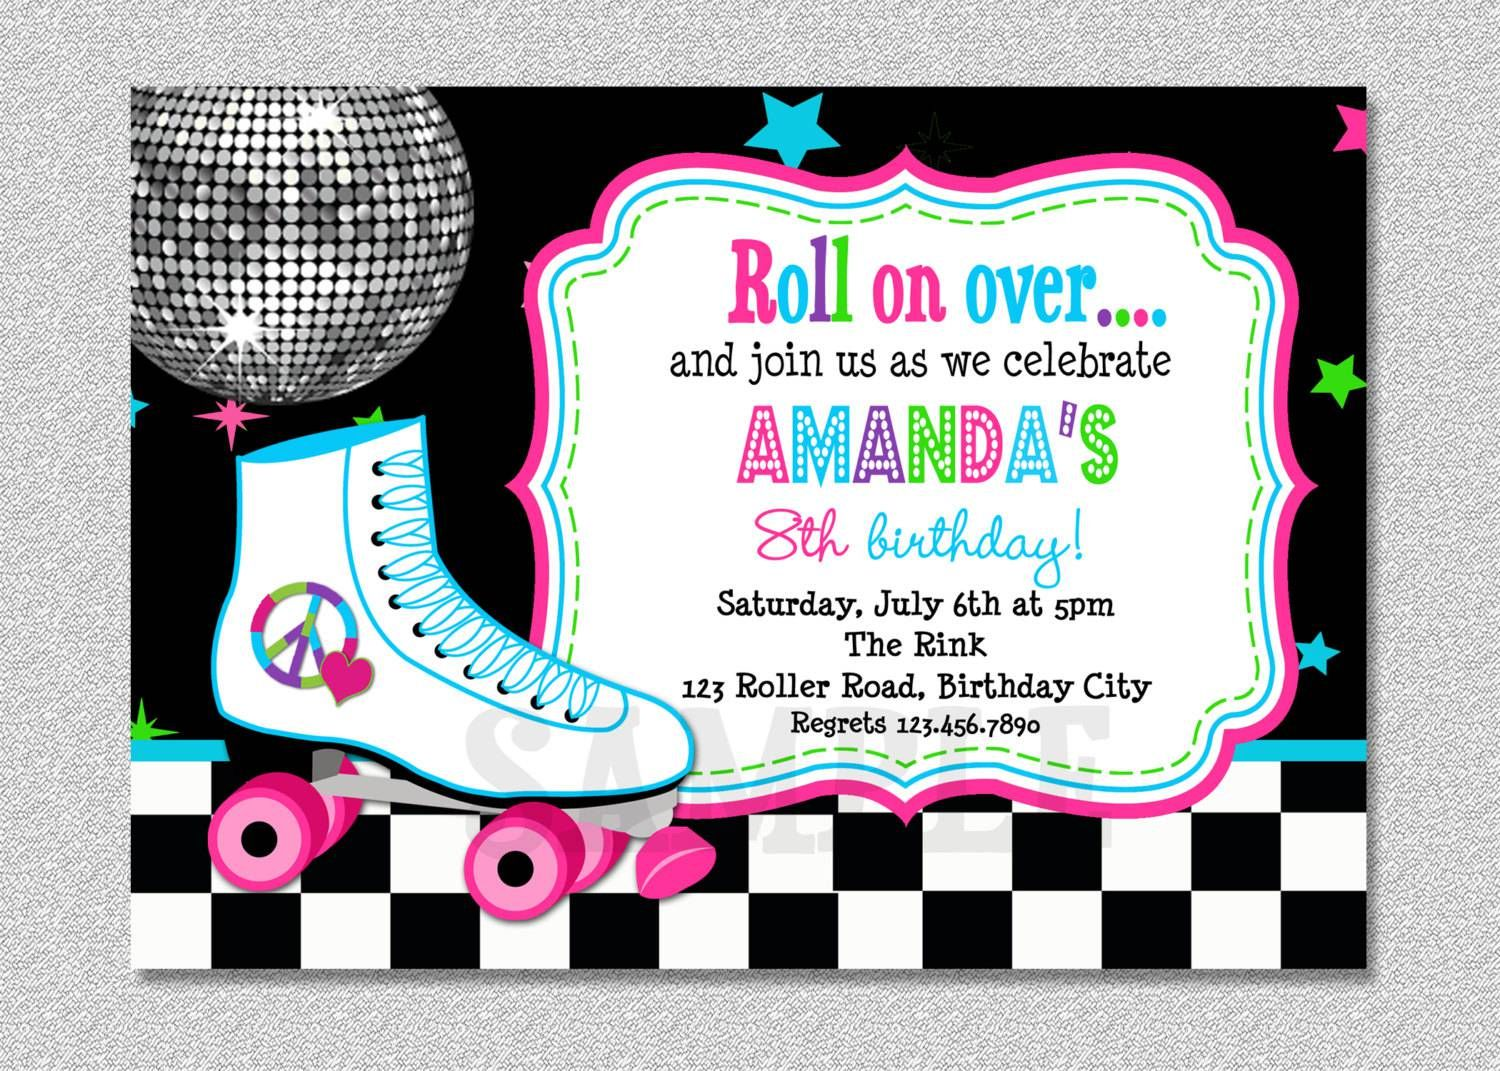 Roller Skating Party Invitations Template | Party | Pinterest ...